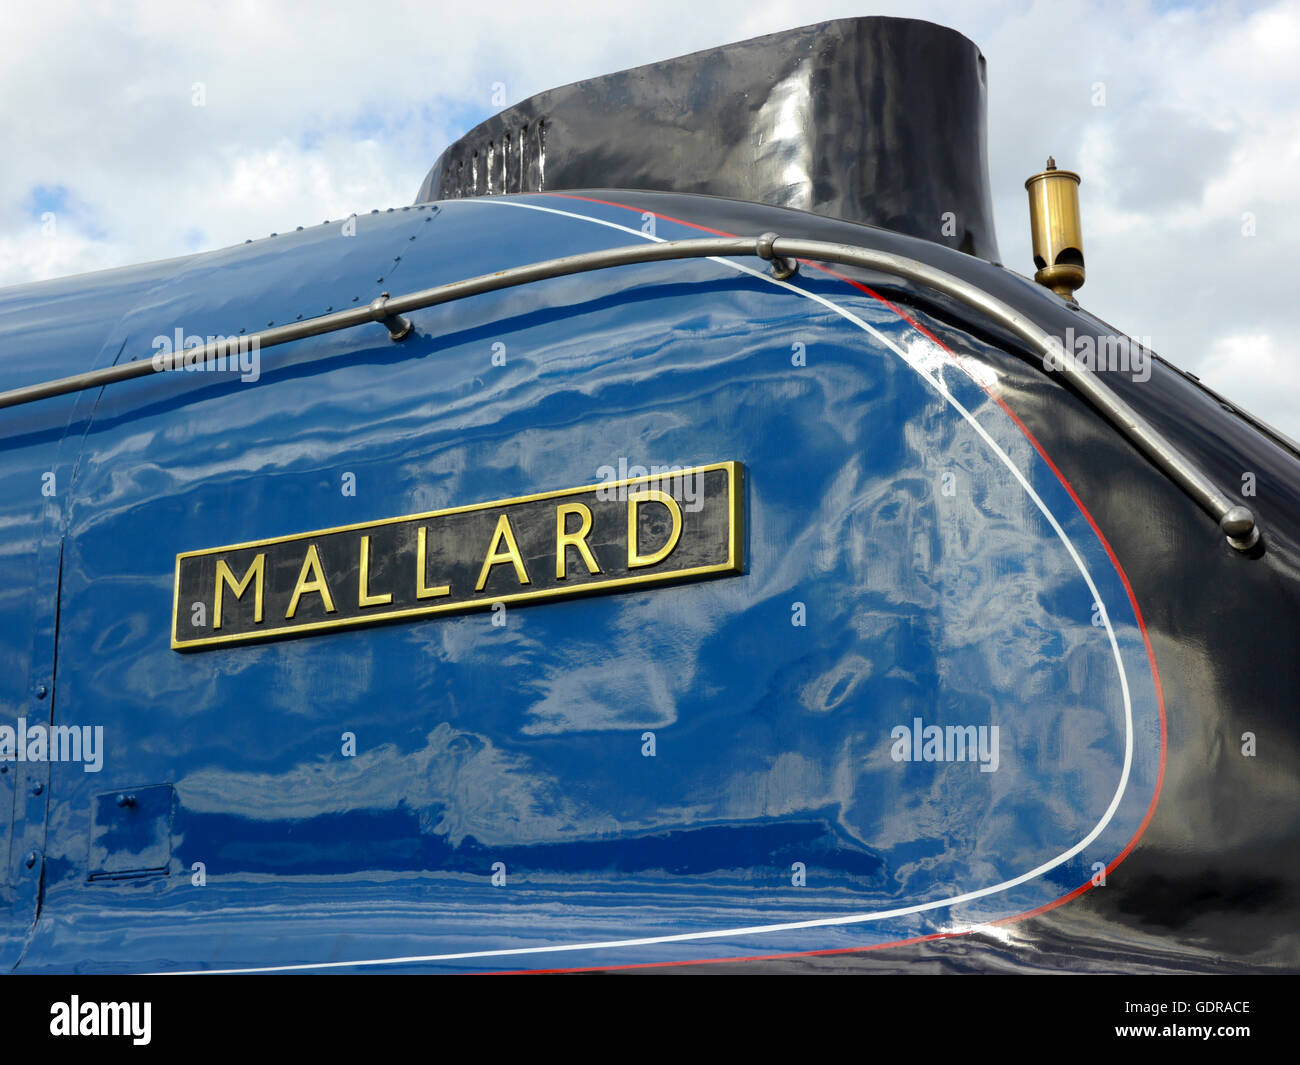 Mallard an A4 Pacific Class Locomotive, holder of the world speed record for a steam locomotive. - Stock Image